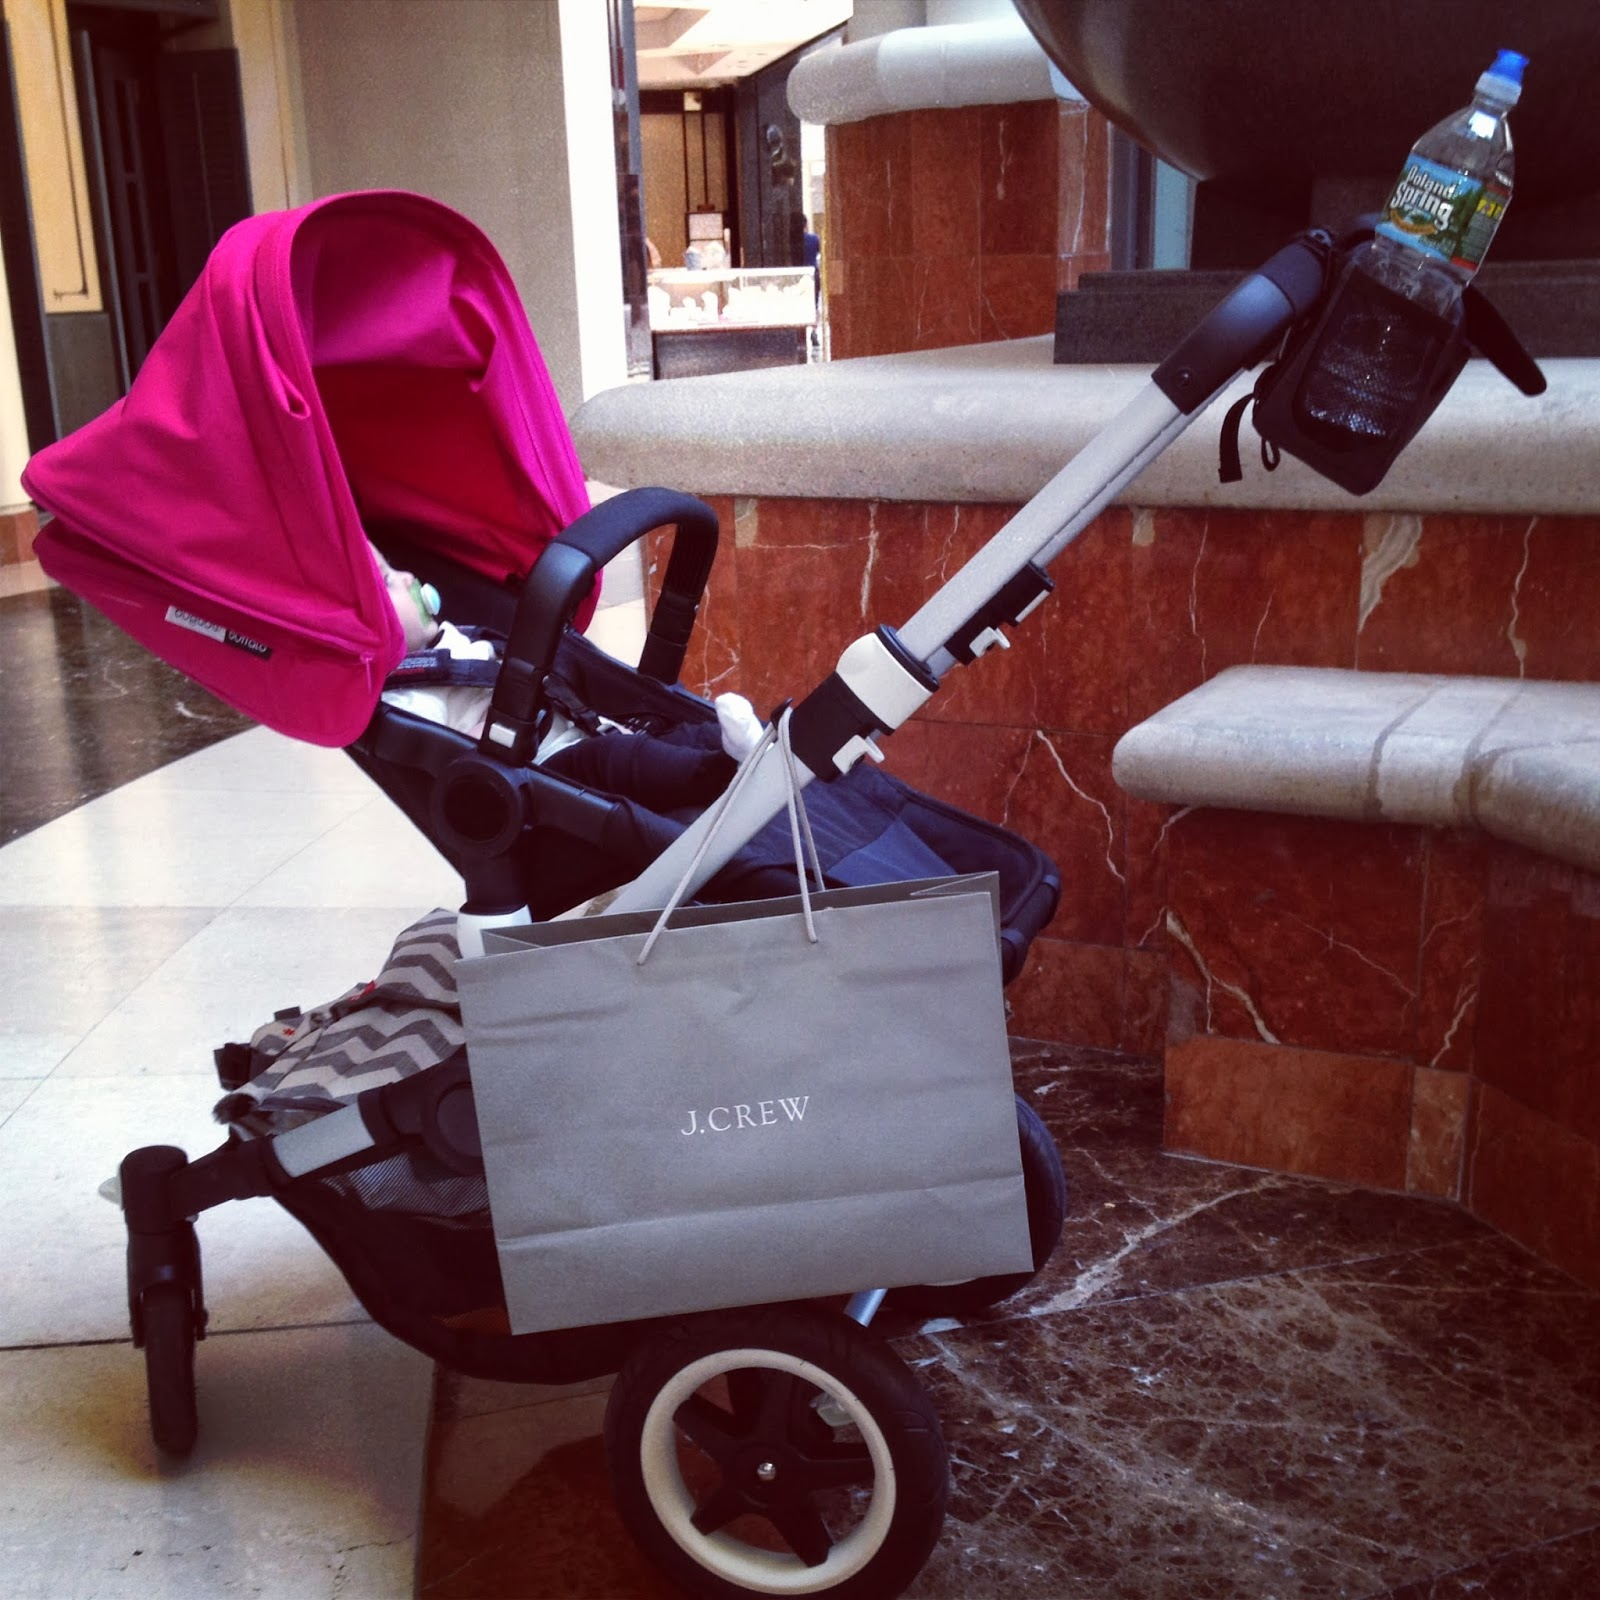 The Buffalo Has A One Piece Self Standing Fold Which Is Great For Storing  The Stroller (It Can Also Fold With The Bassinet Attached To The Frame).